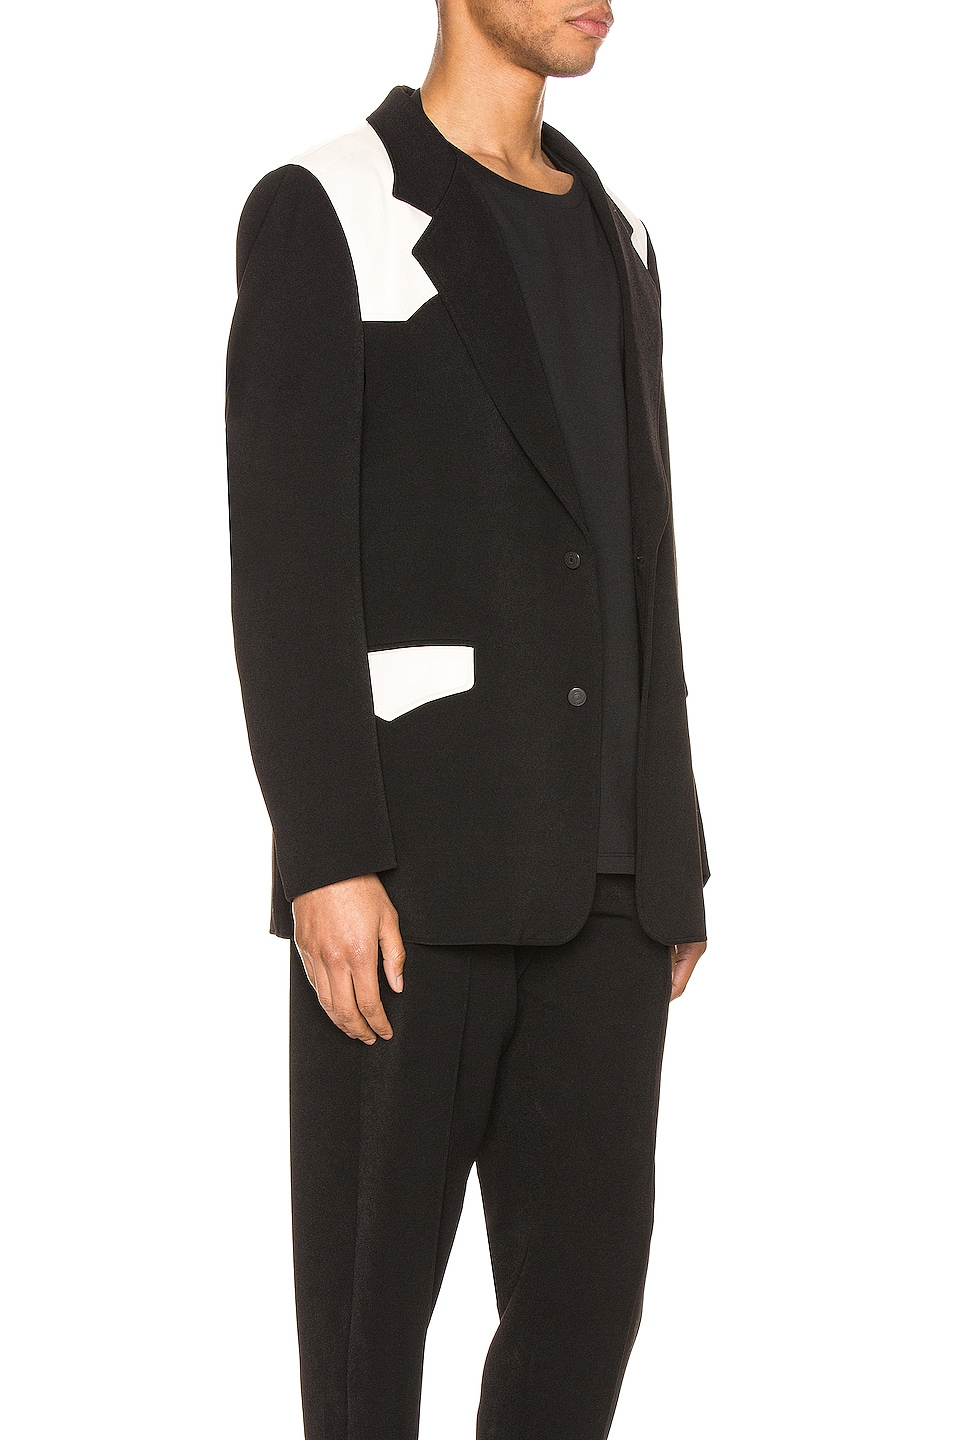 Image 3 of Keiser Clark Western Detective Suit Jacket in Black & White